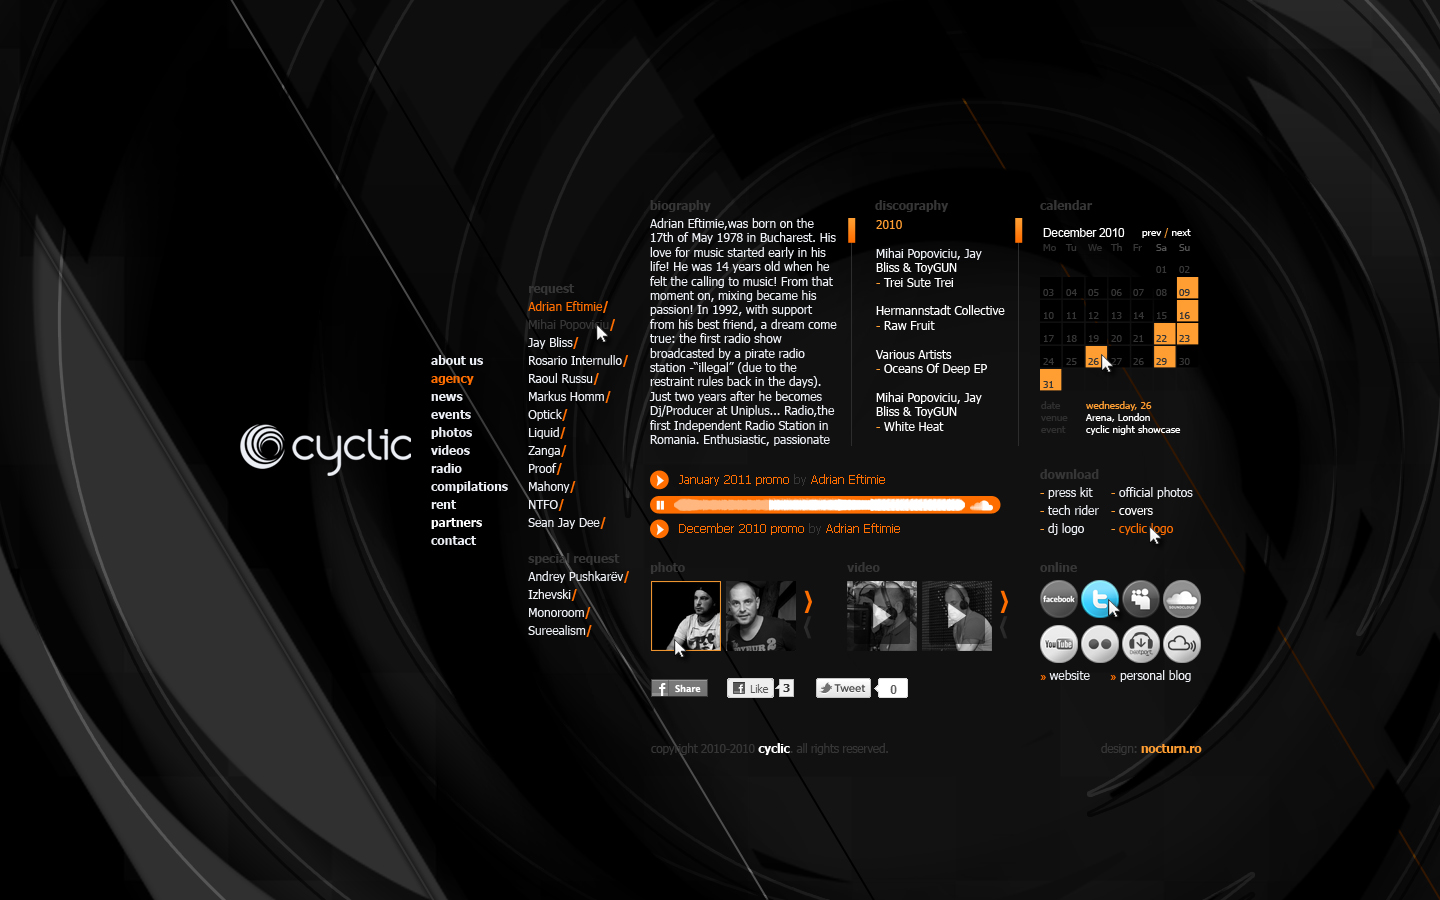 cyclic dj booking agency records label - artist page - web website design by Utopia branding agency